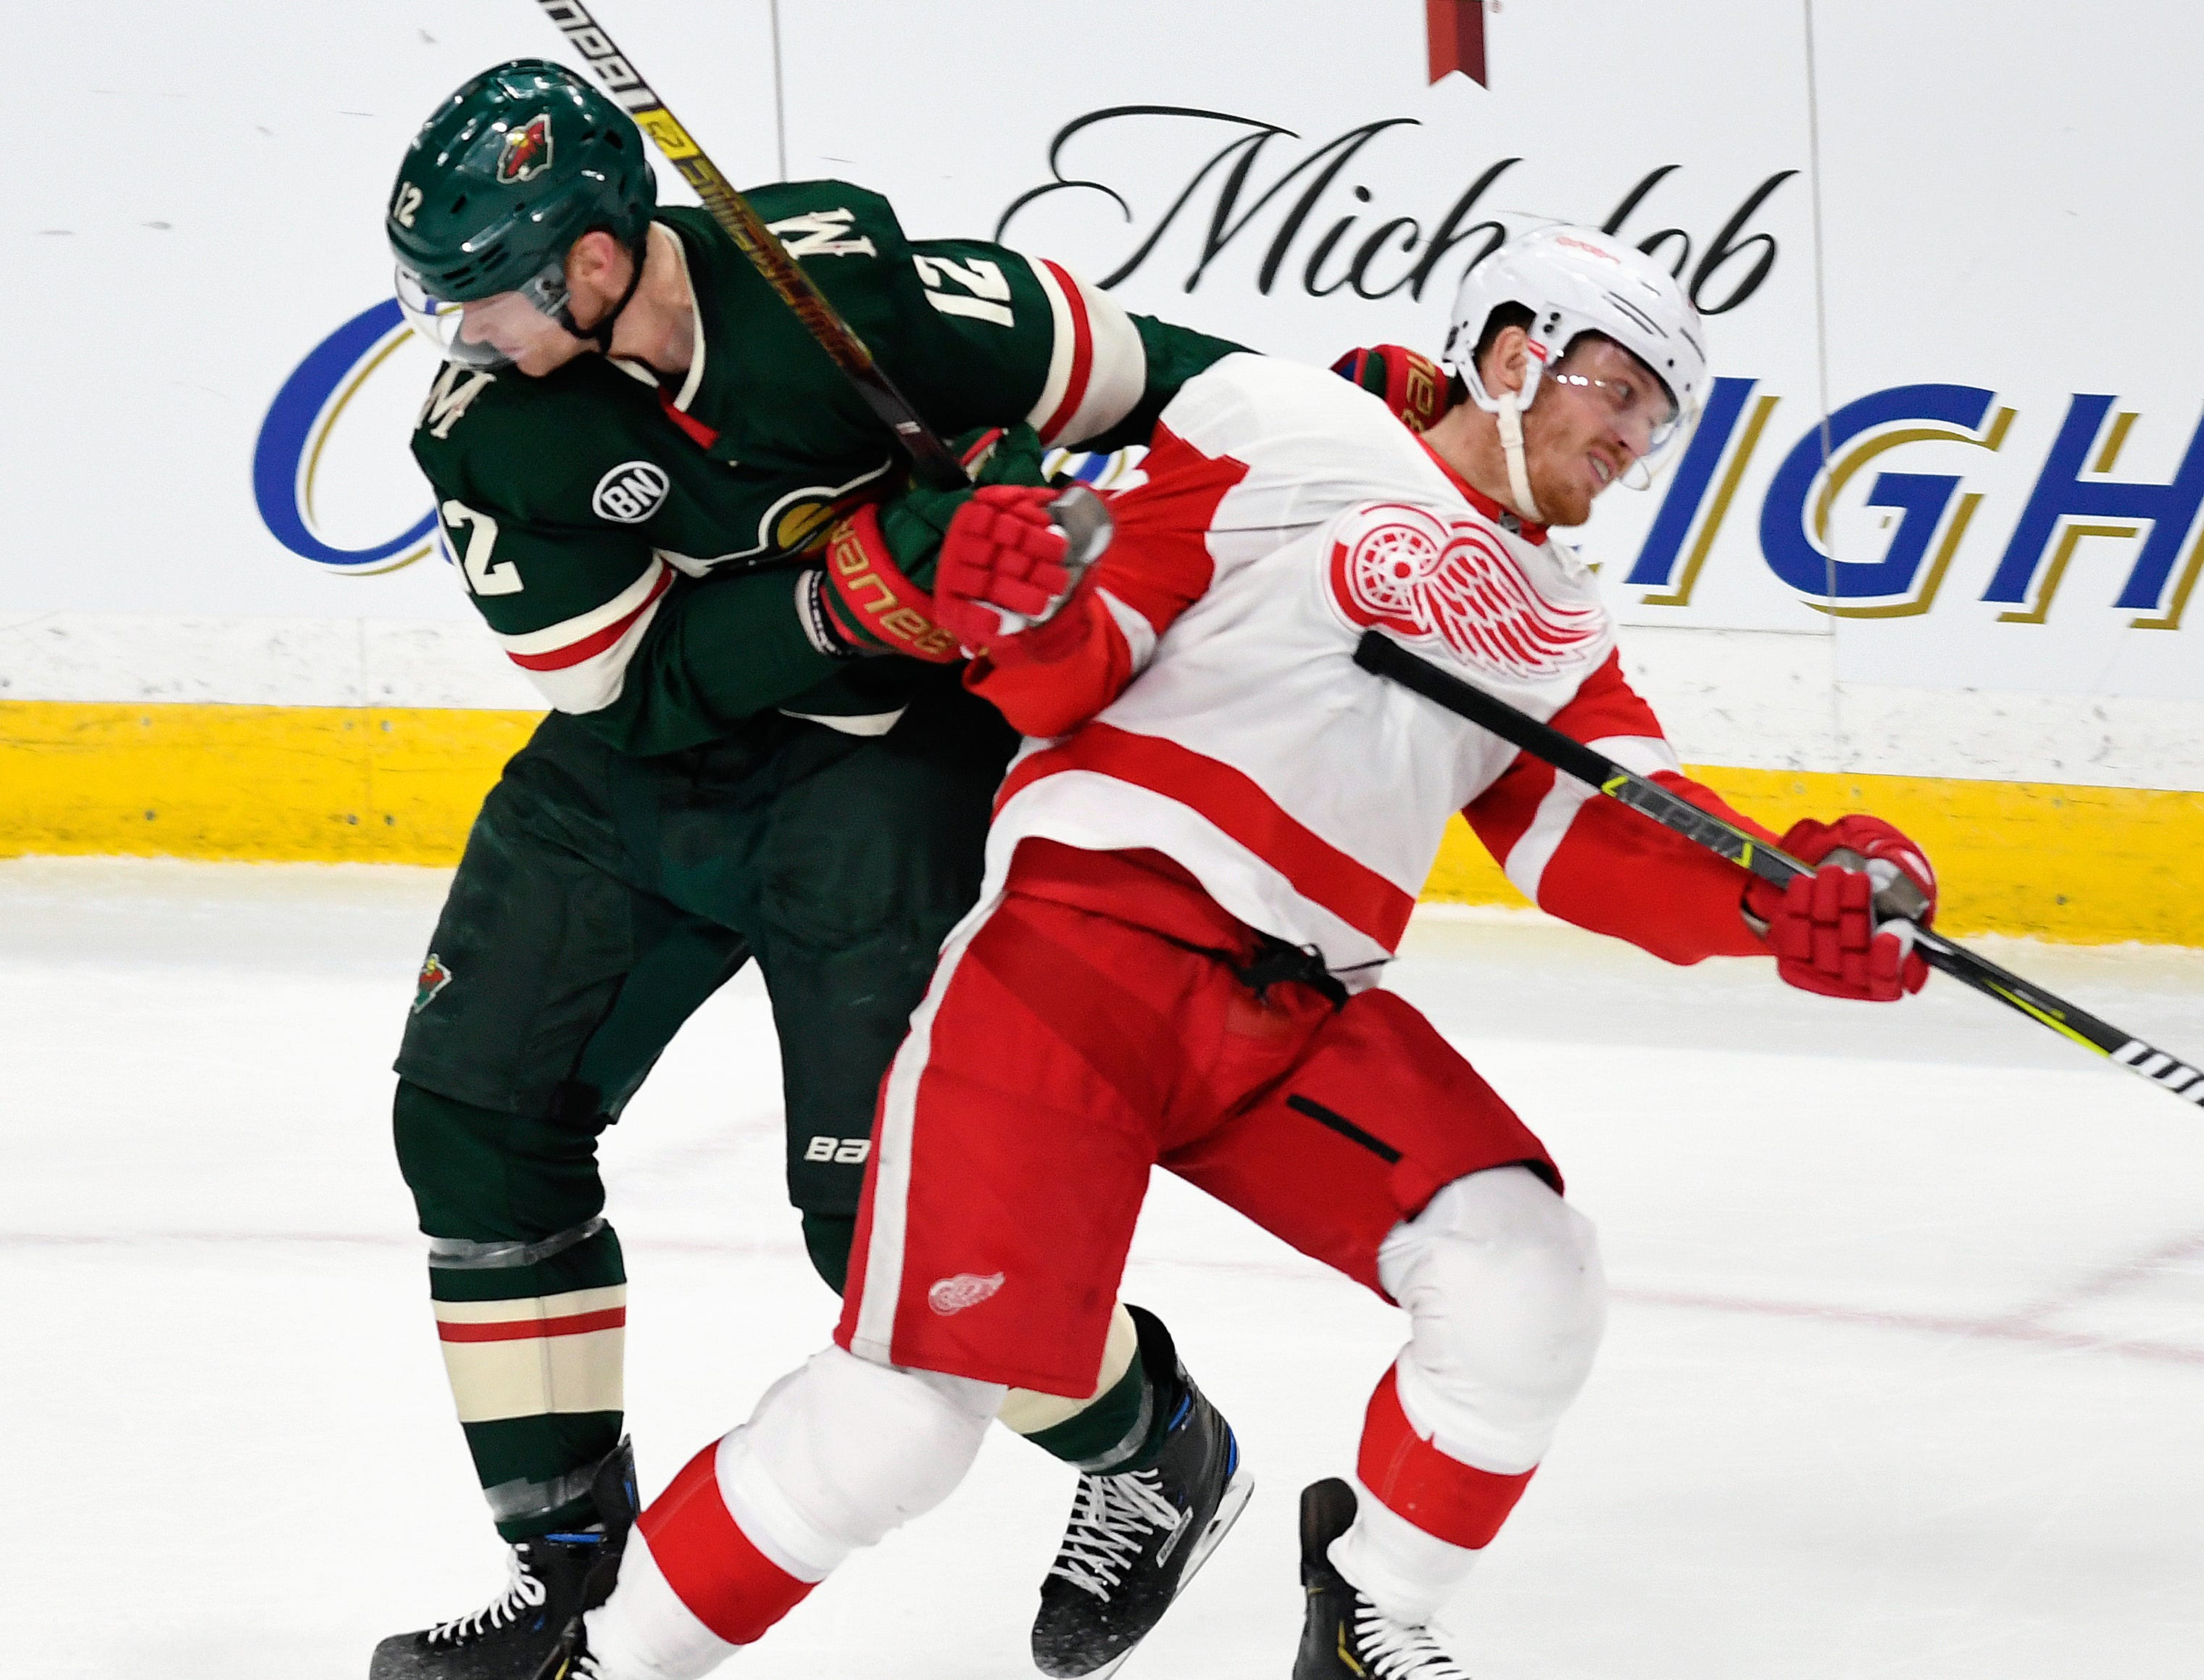 Minnesota Wild's Eric Staal, left, pulls down Detroit Red Wings' Gustav Nyquist, right, of Sweden, during the third period of an NHL hockey game Saturday, Jan. 12, 2019, in St. Paul, Minn. Stall received a penalty for holding on the play. (AP Photo/Tom Olmscheid)